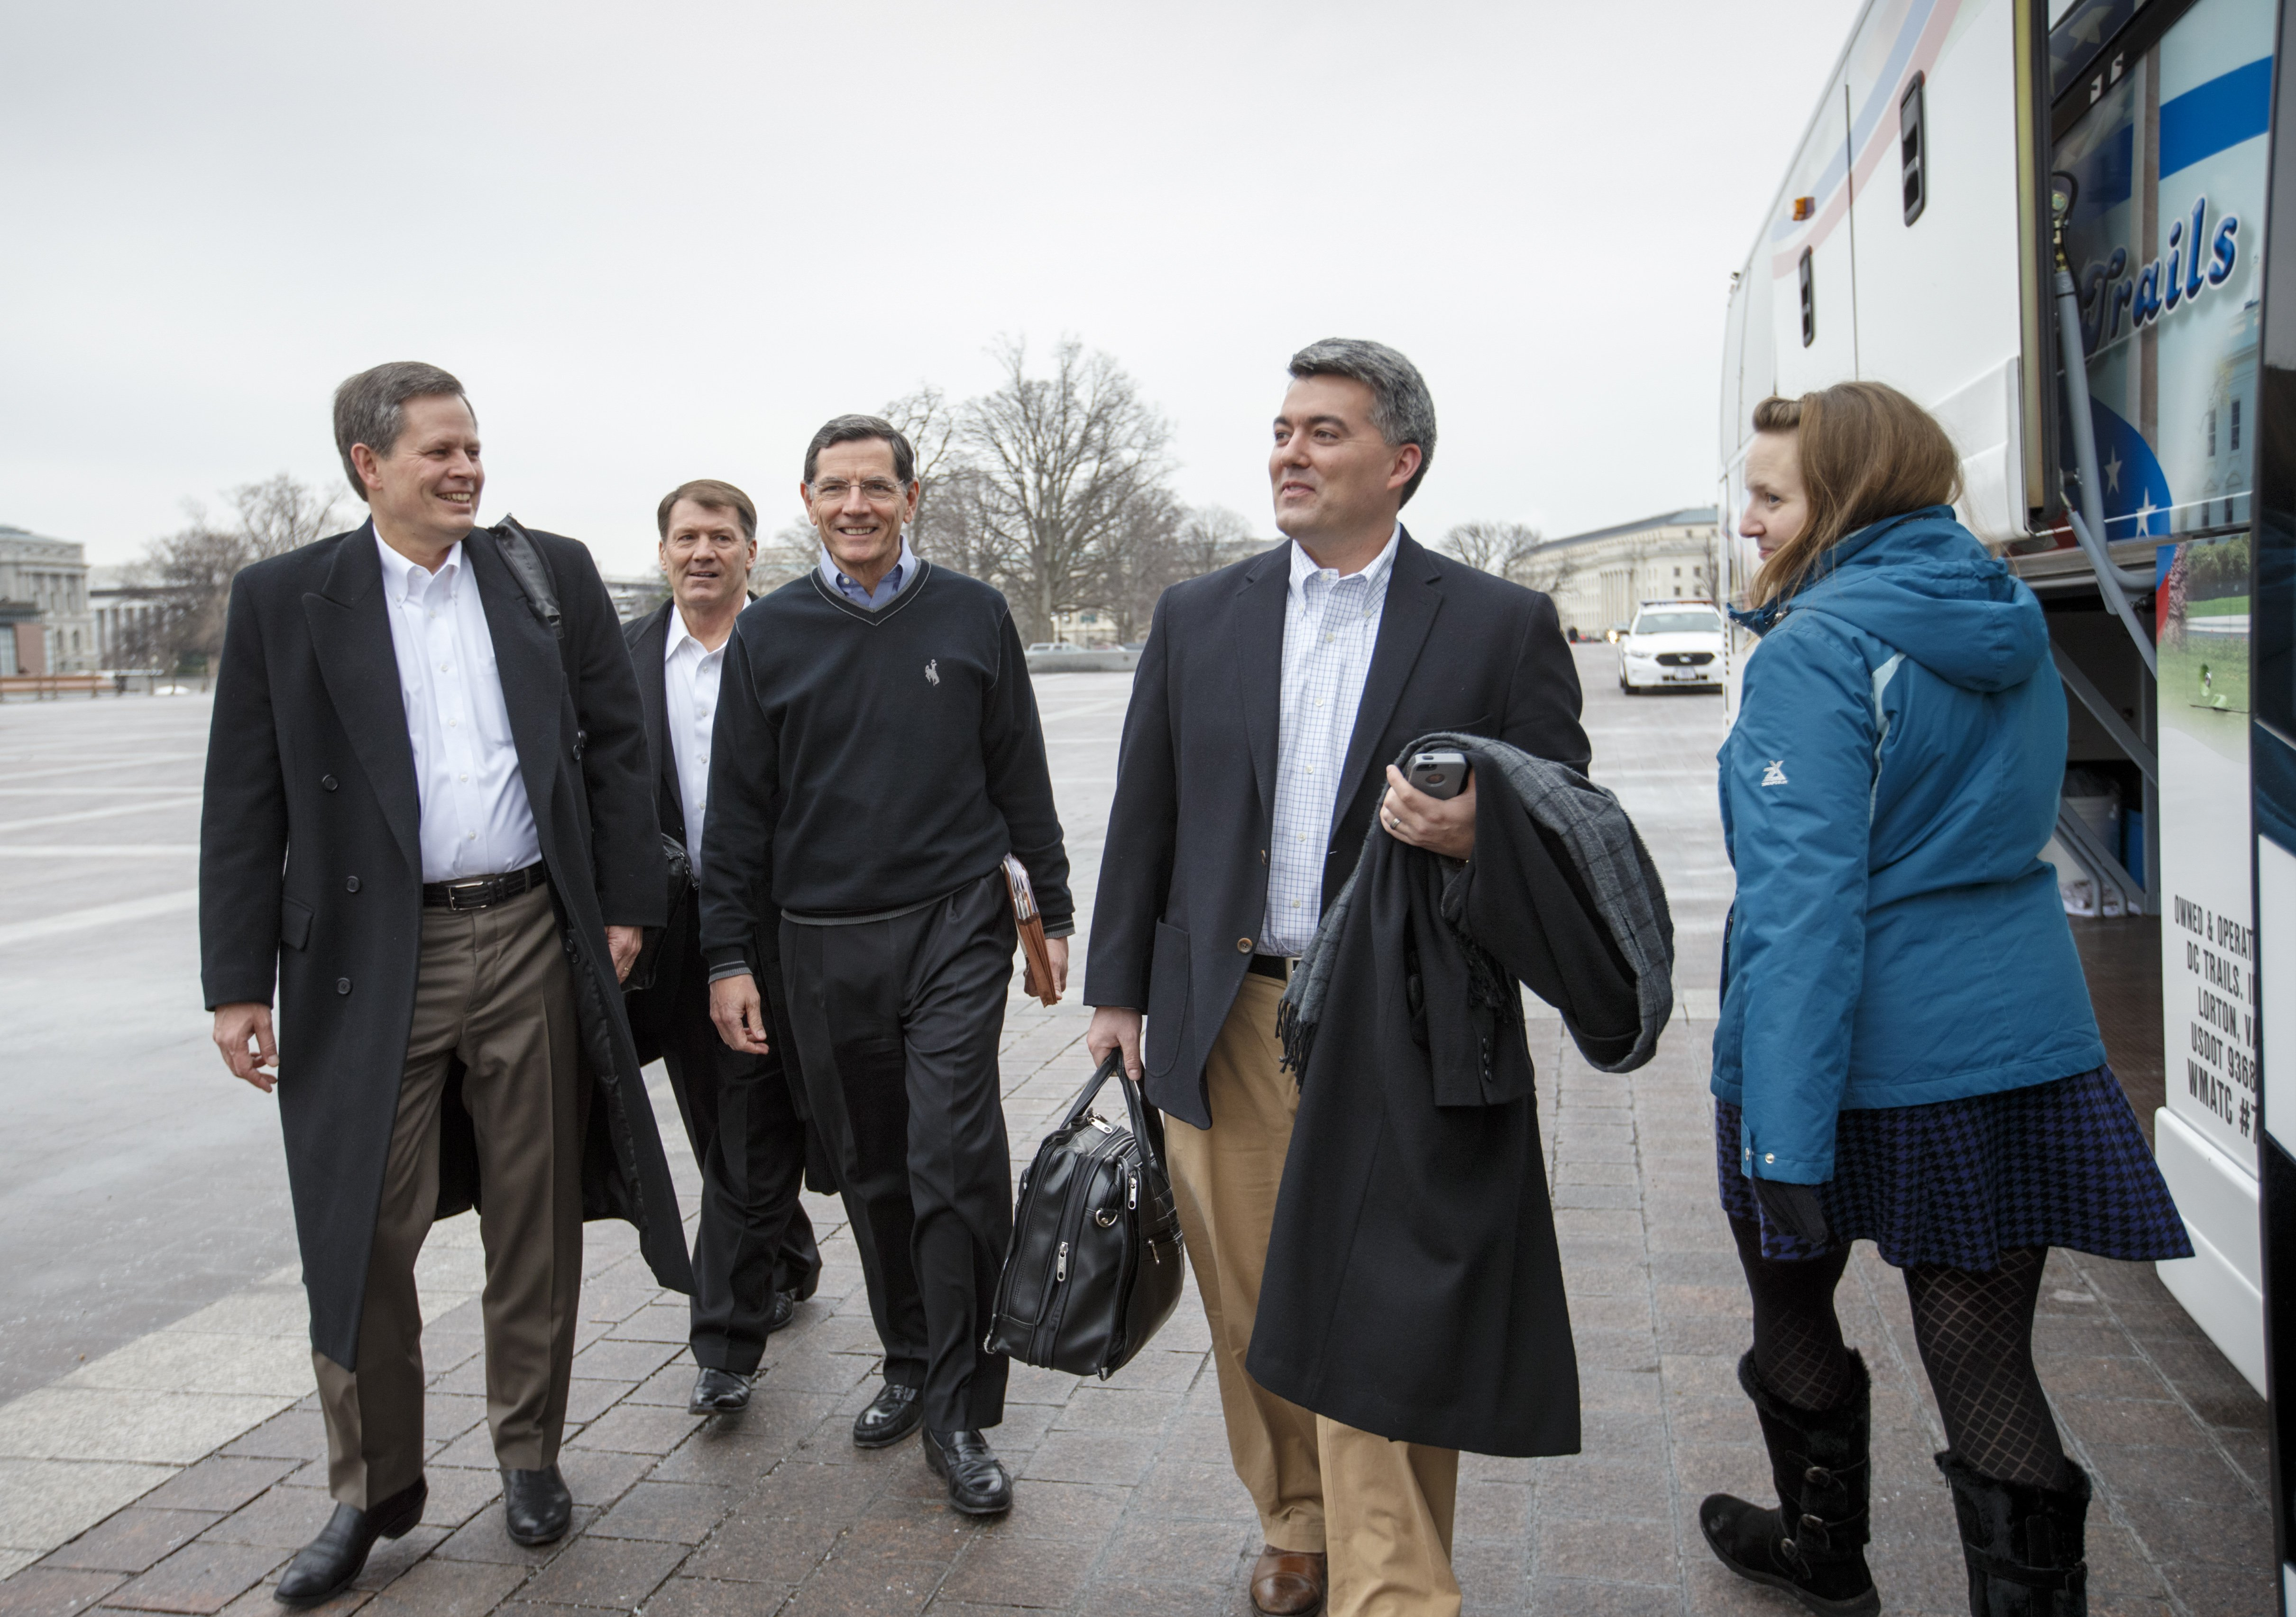 From left, Sen. Steve Daines, R-Mont., Sen. Mike Rounds, R-S.D., Sen. John Barrasso, R-Wyo., and Sen. Cory Gardner, R-Colo., prepare to board a tour bus to join Senate and House Republicans at a two-day policy retreat in Hershey, Pa. on Jan. 14, 2015 in Washington.